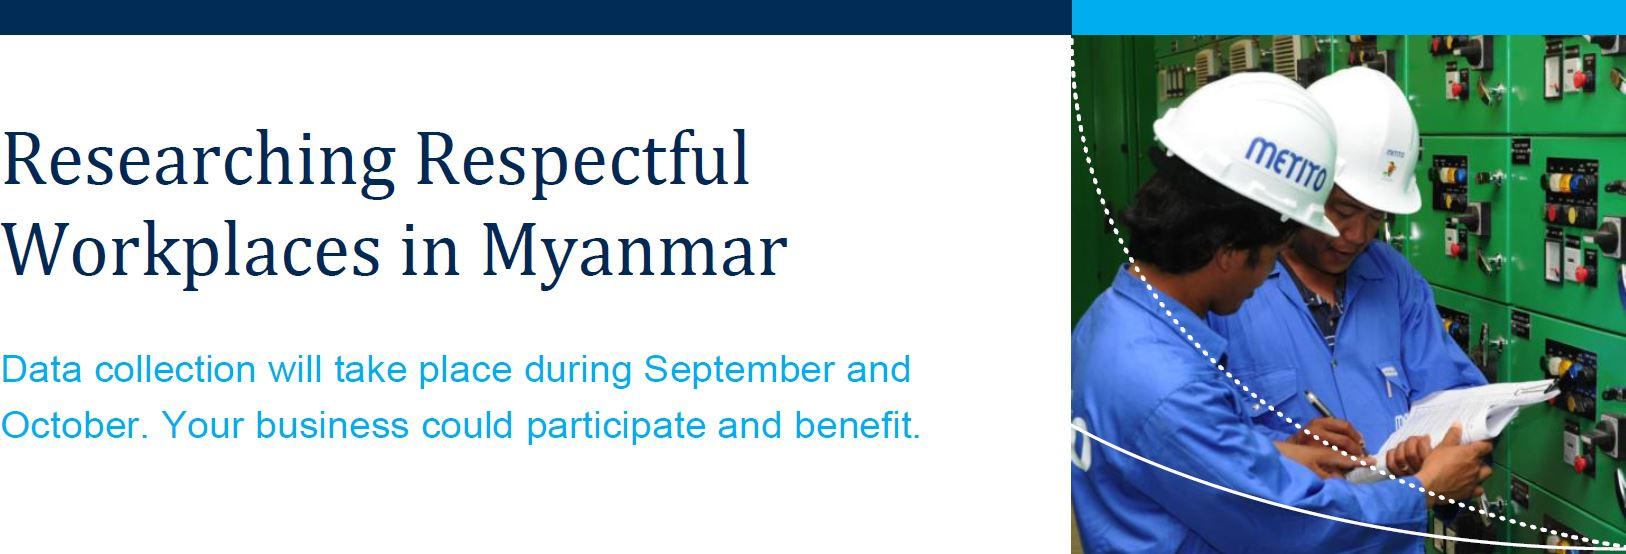 Researching Respectful Workplaces in Myanmar